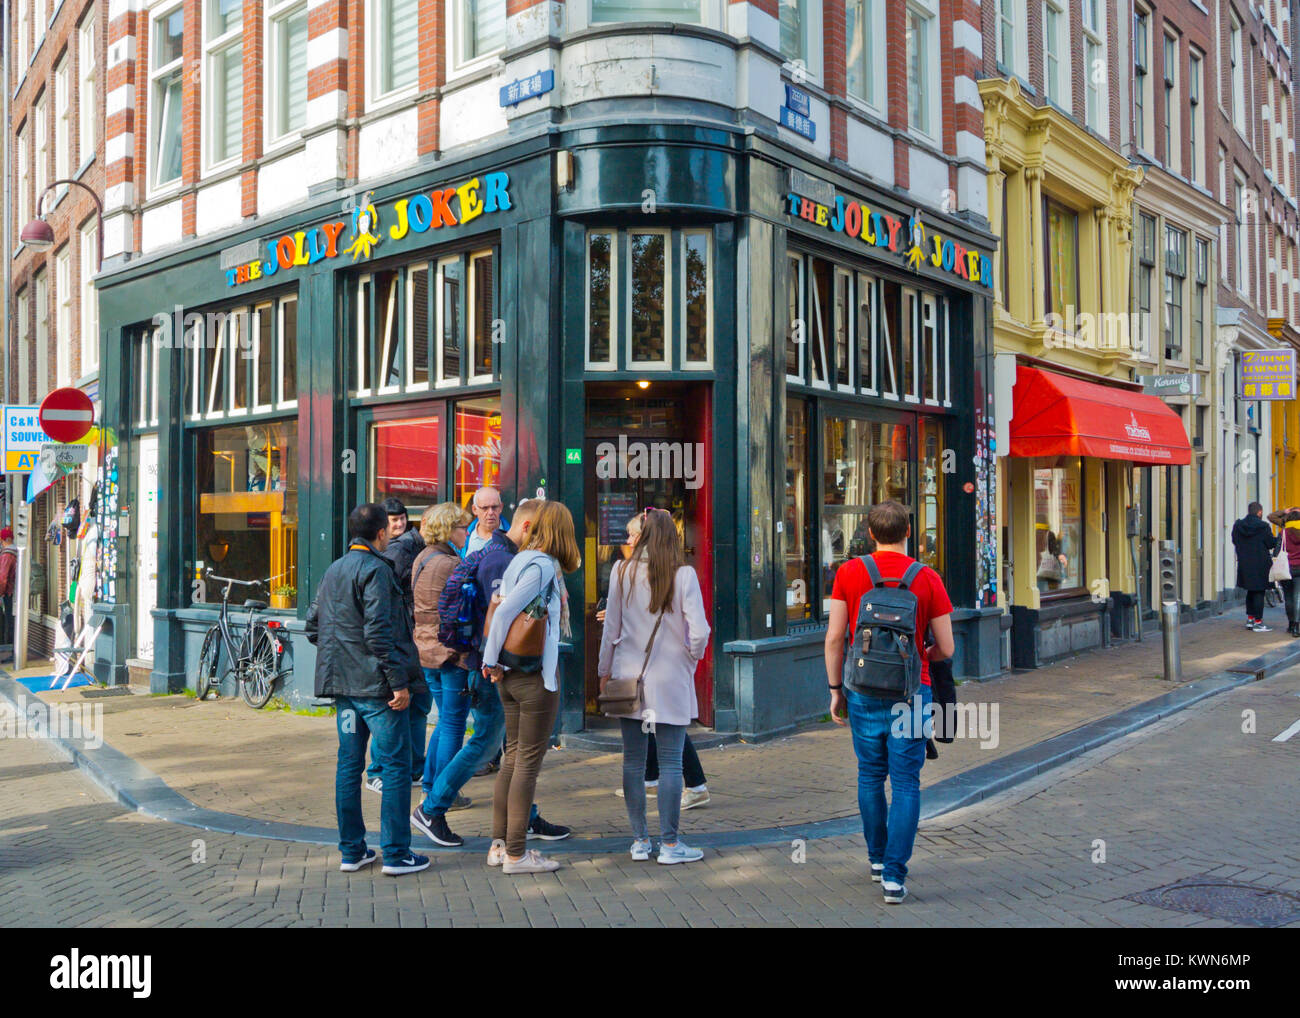 Jolly Joker coffeeshop, Nieuwmarkt, vieille ville, Amsterdam, Pays-Bas Photo Stock